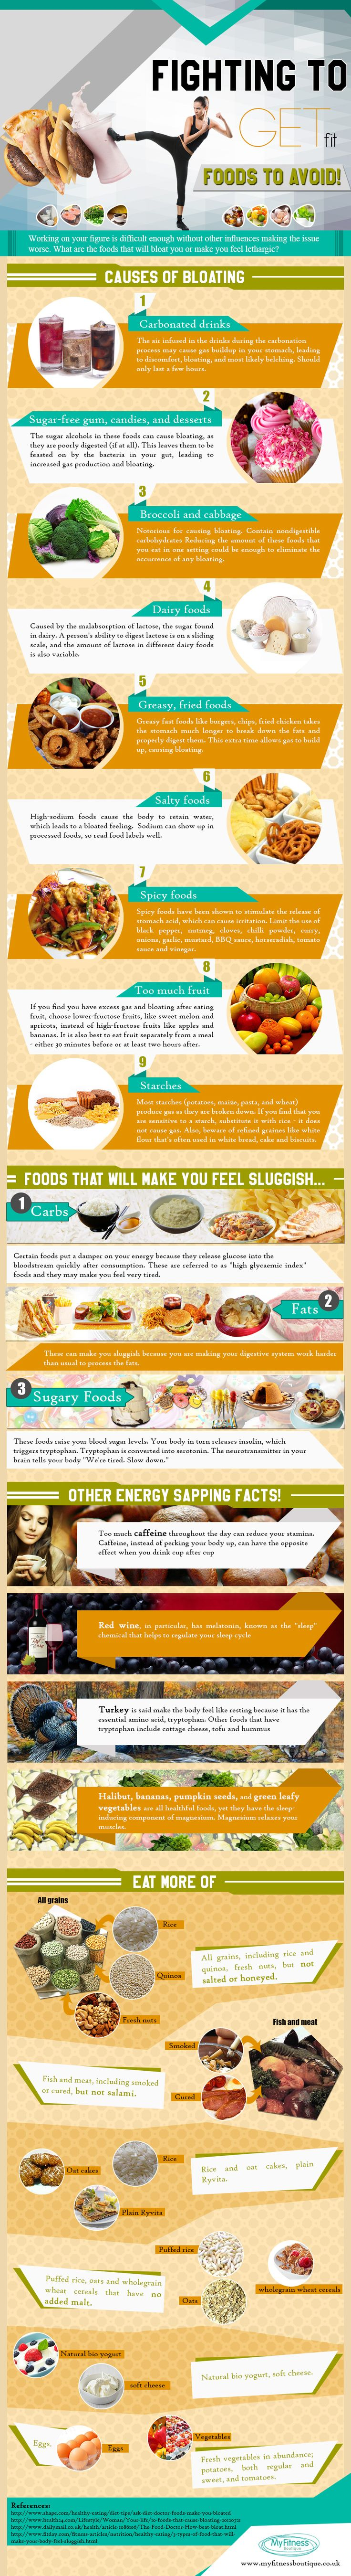 Infographic: Foods To Avoid When Trying To Lose Weight - DesignTAXI.com